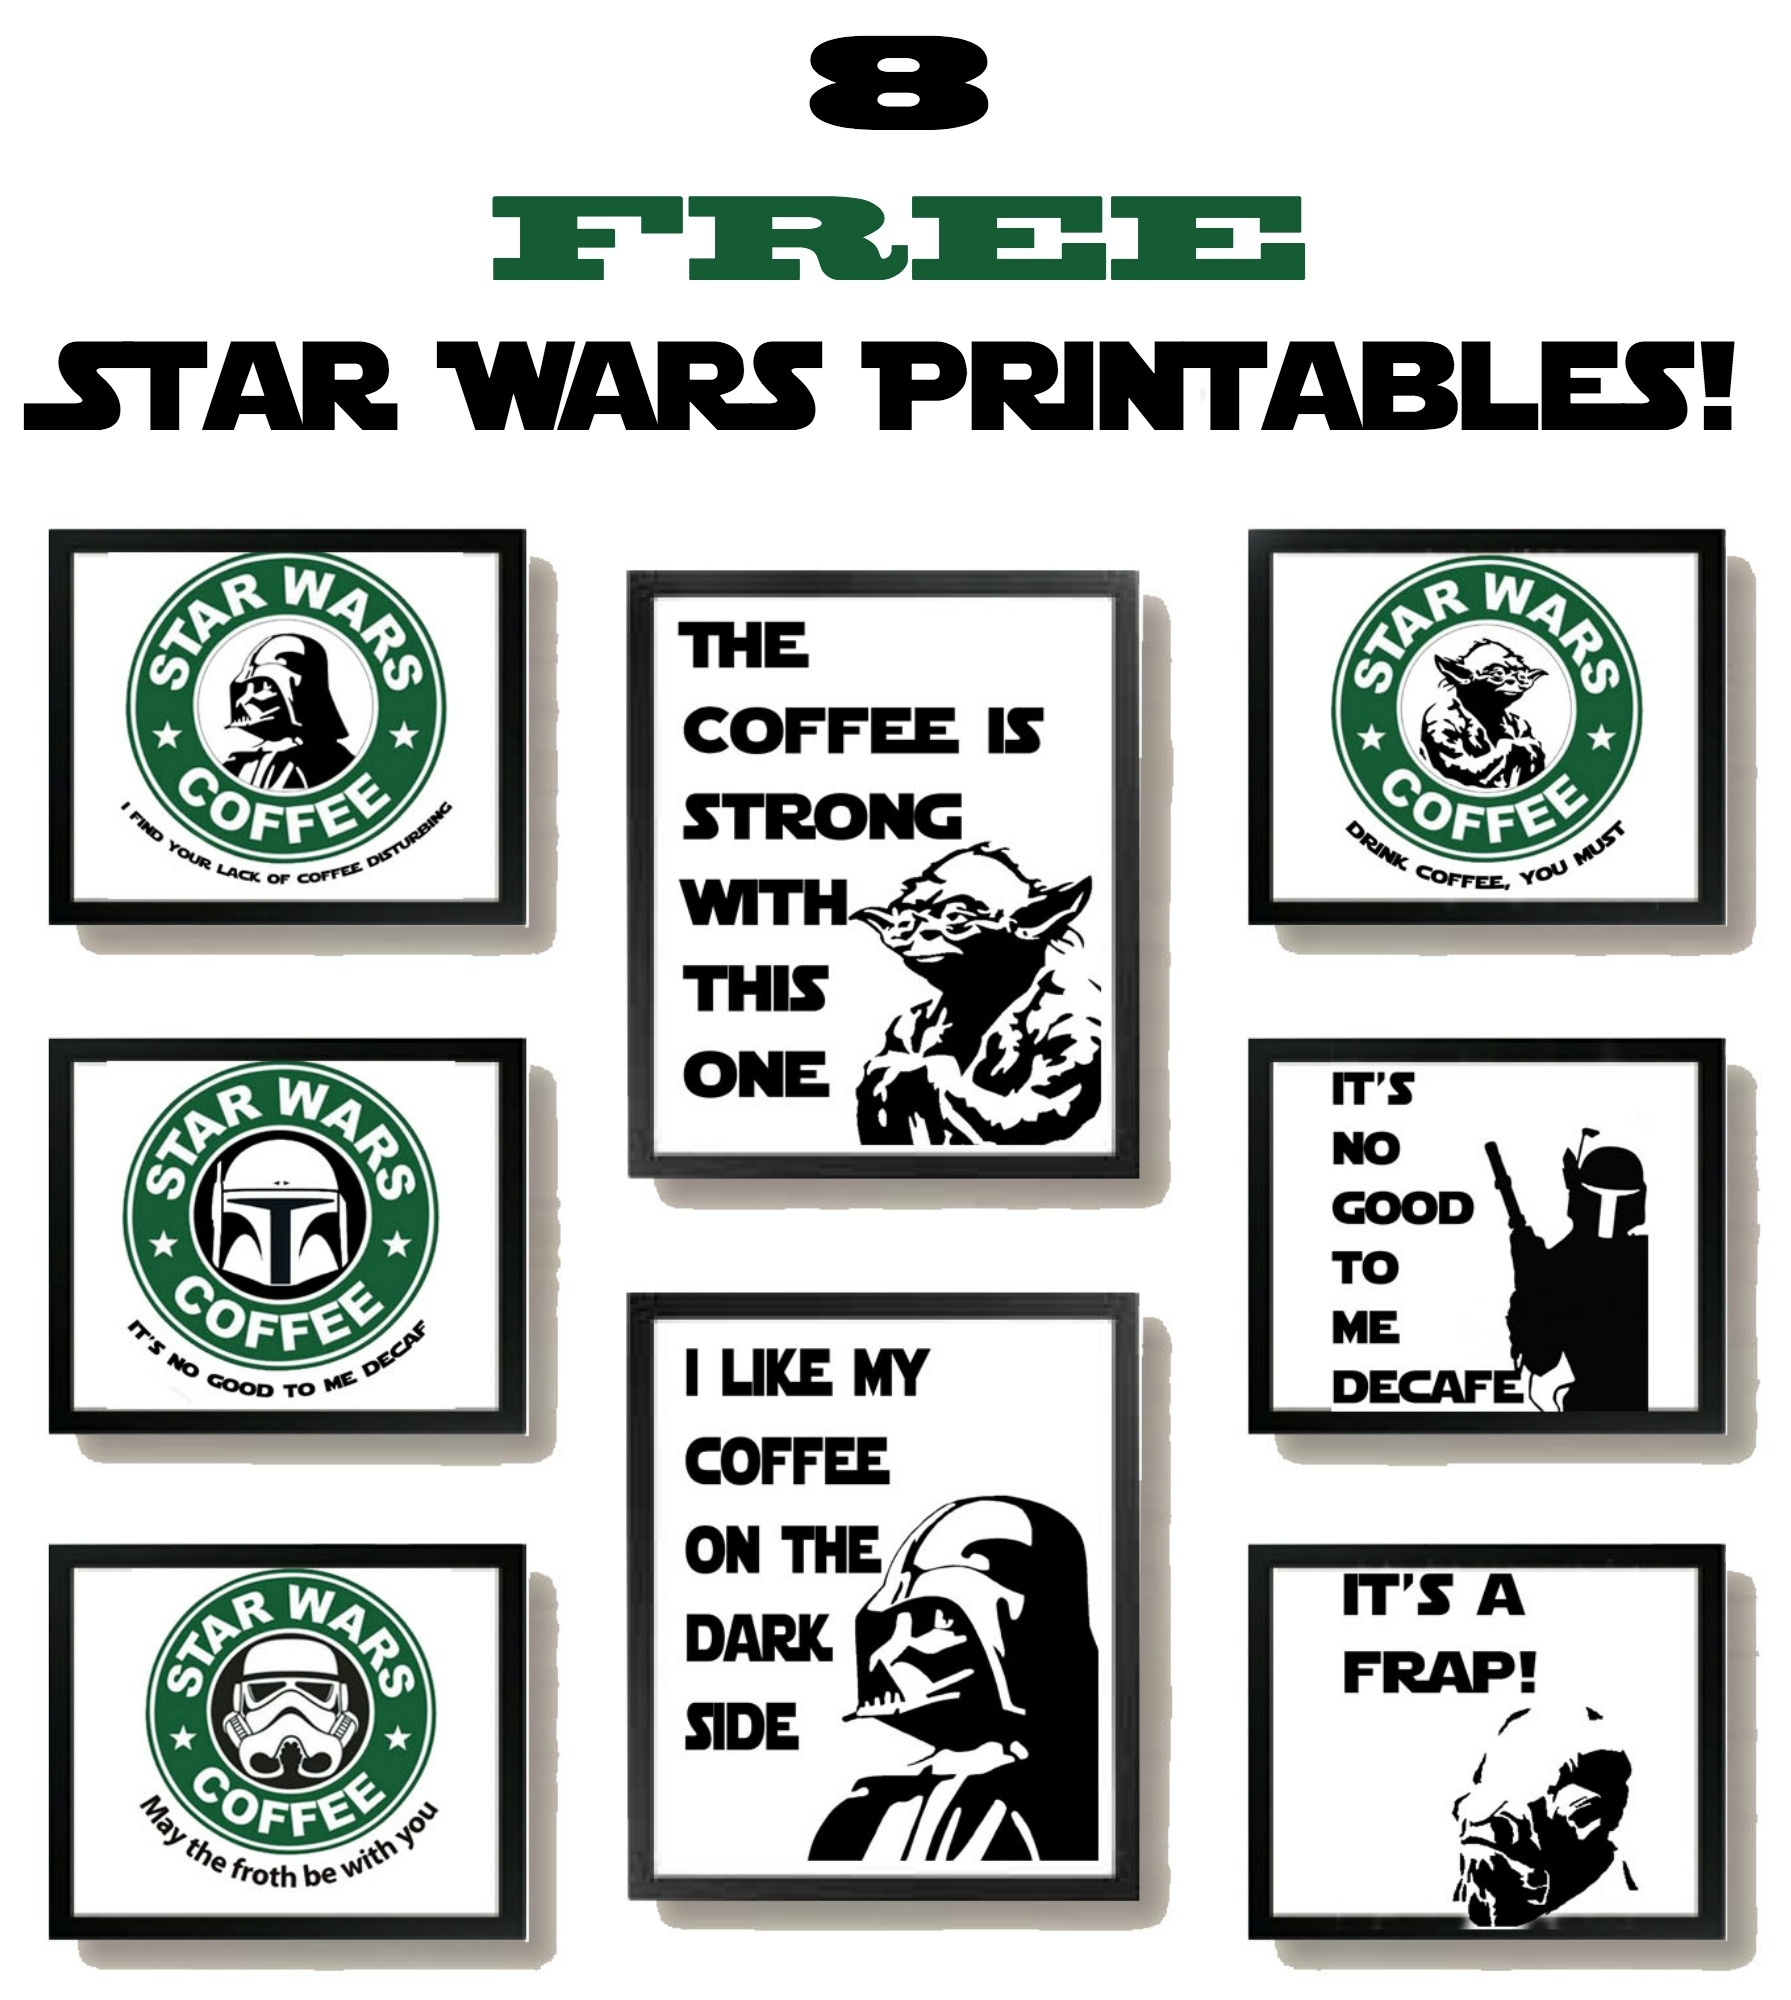 Free Star Wars Printables With A Coffee Theme! - Some Of This And That - Free Star Wars Printables